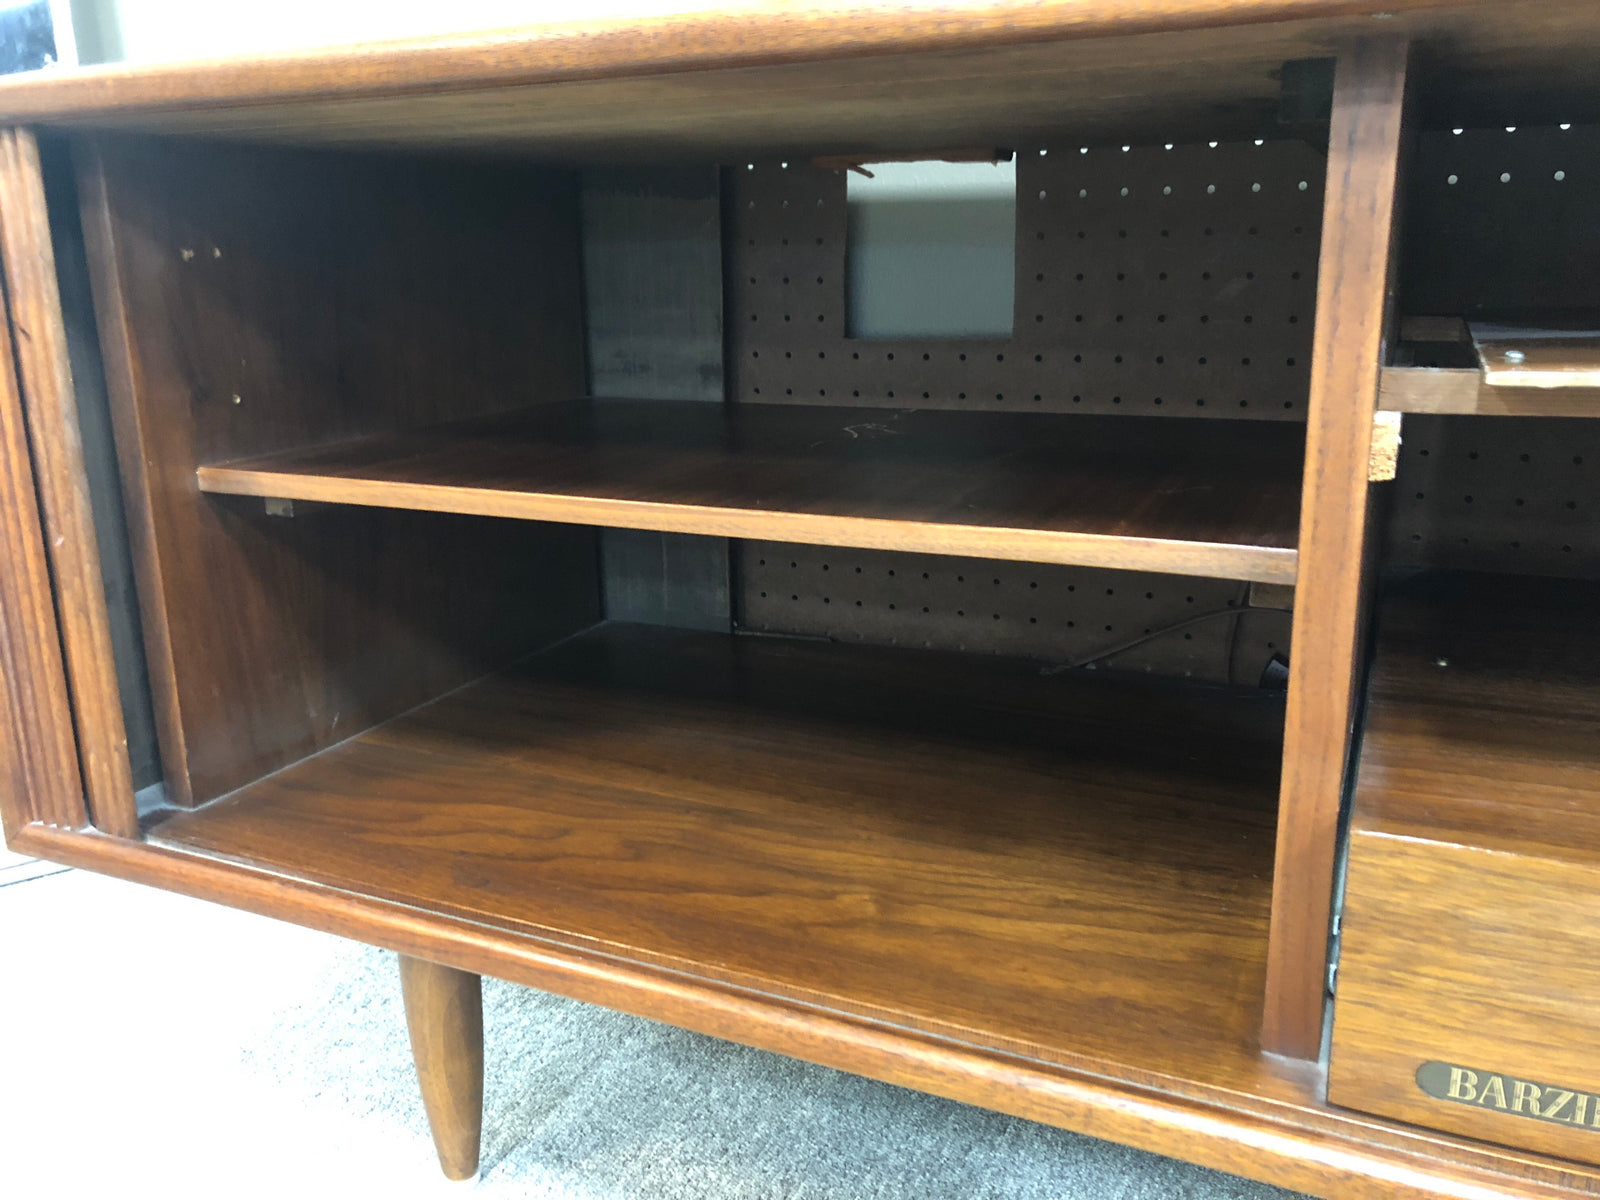 Barzilay Console Unit